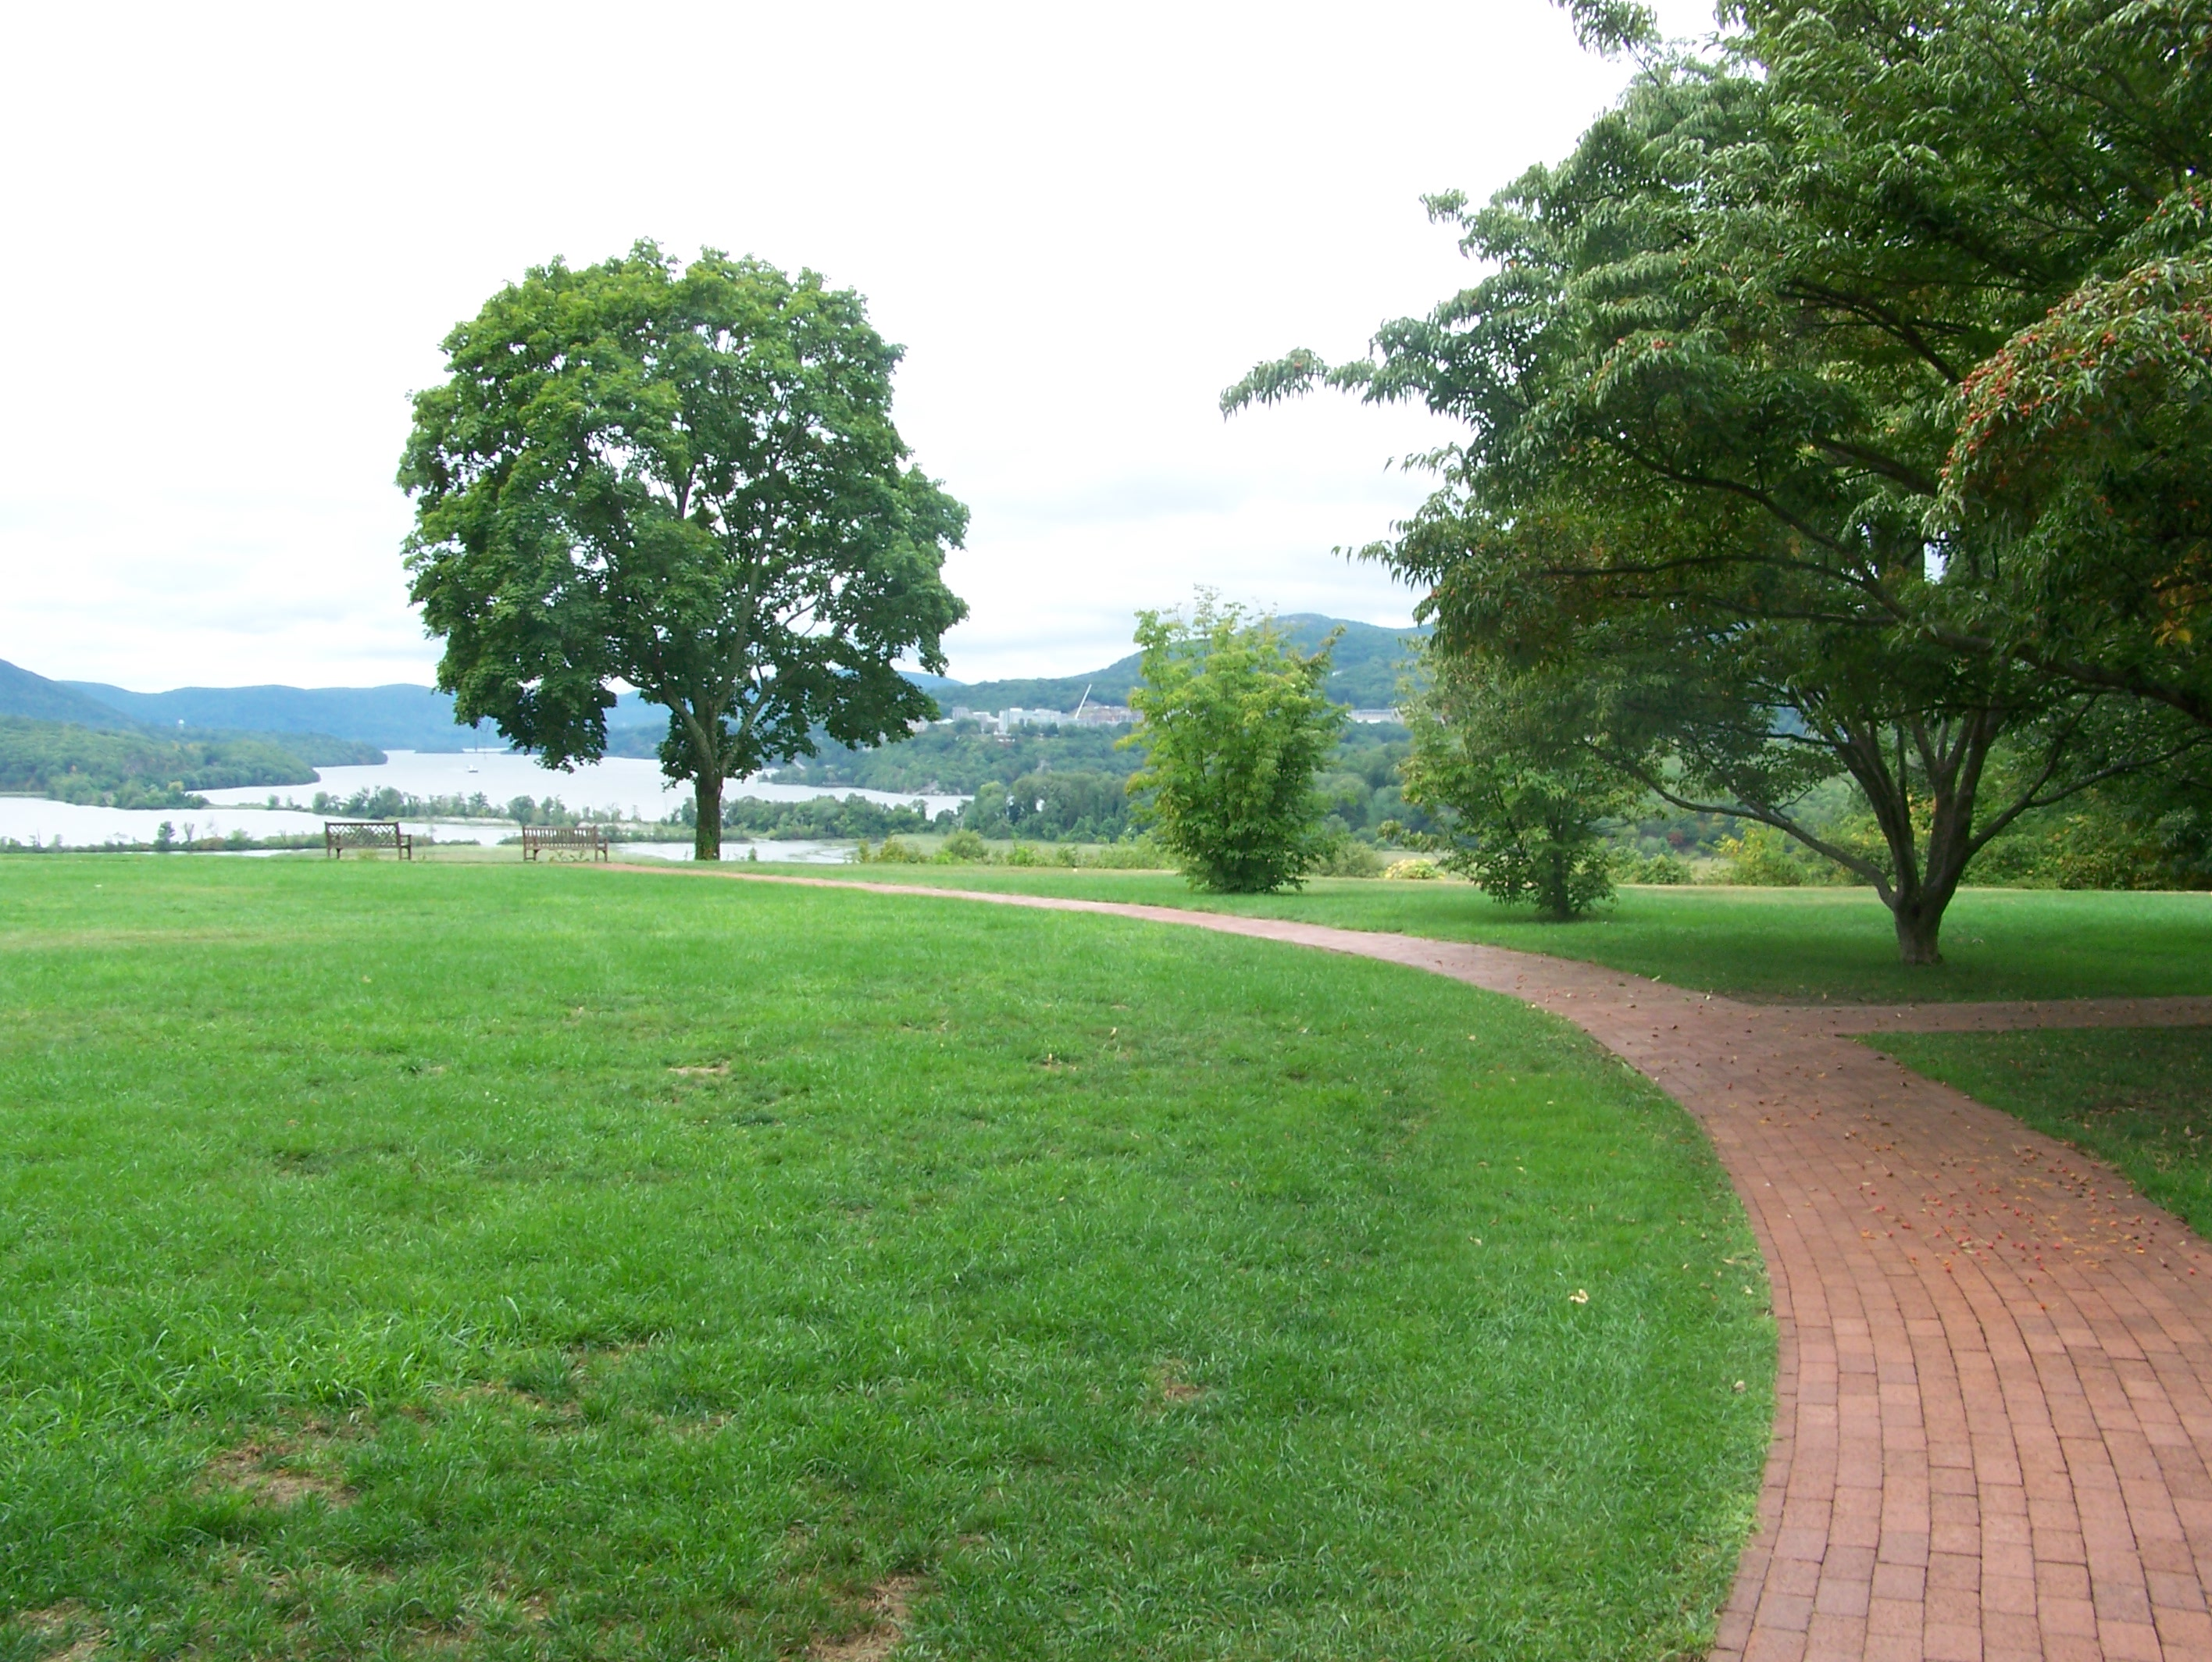 Brick Path to Great Lawn and the View